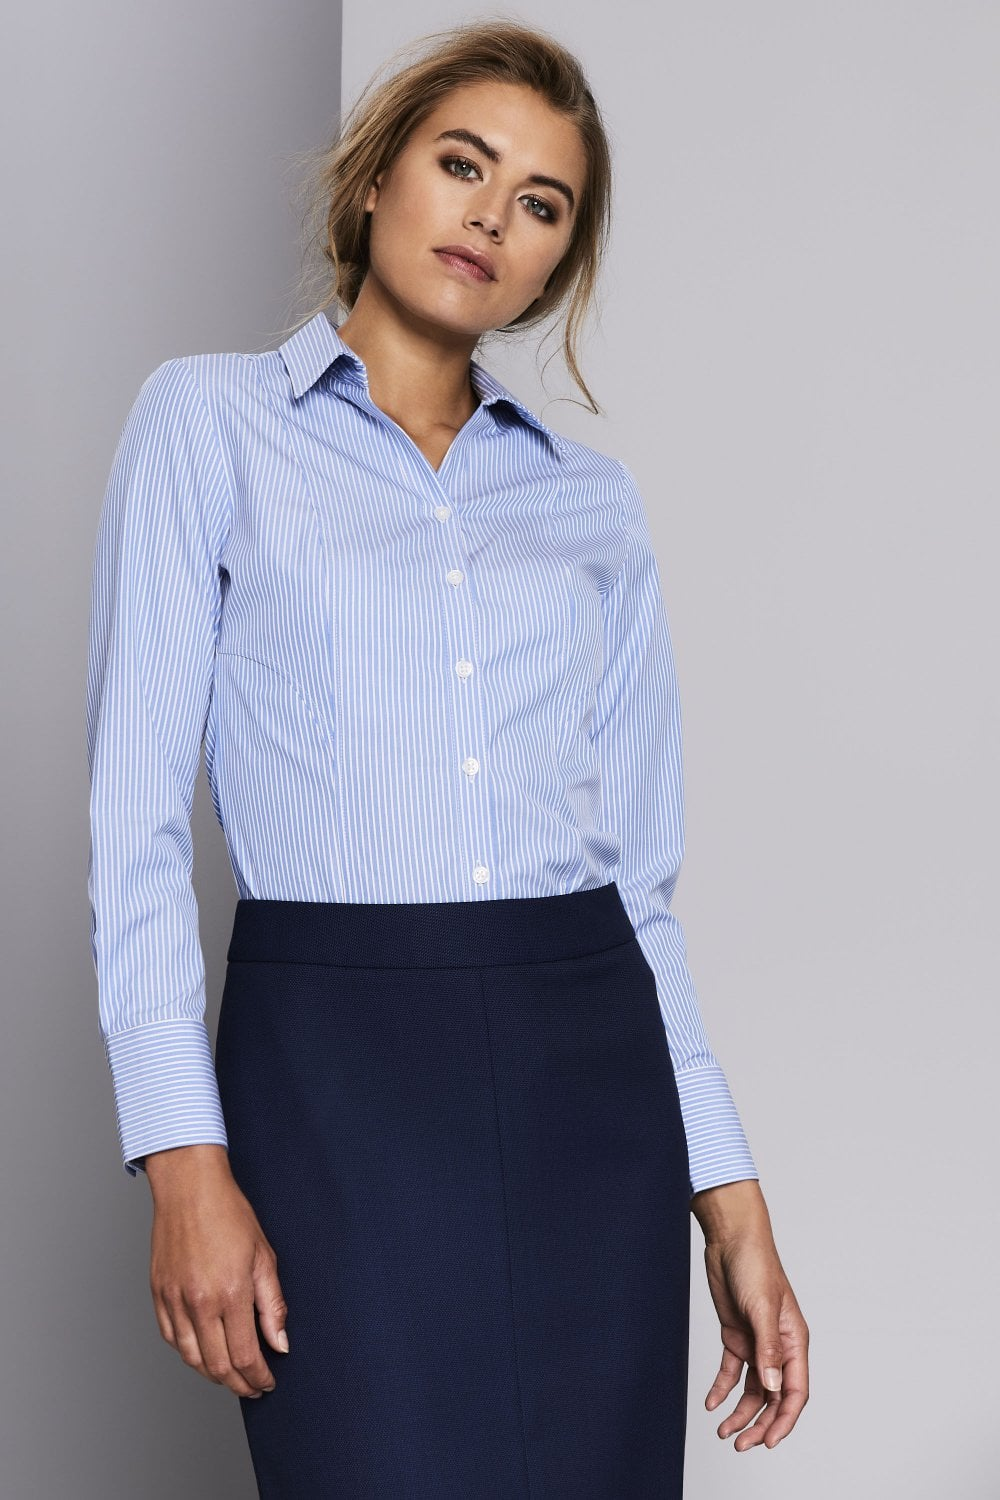 37a0cc8c1 Women's Business Stripe Shirt - SHOP BY PROFESSION from Simon Jersey UK